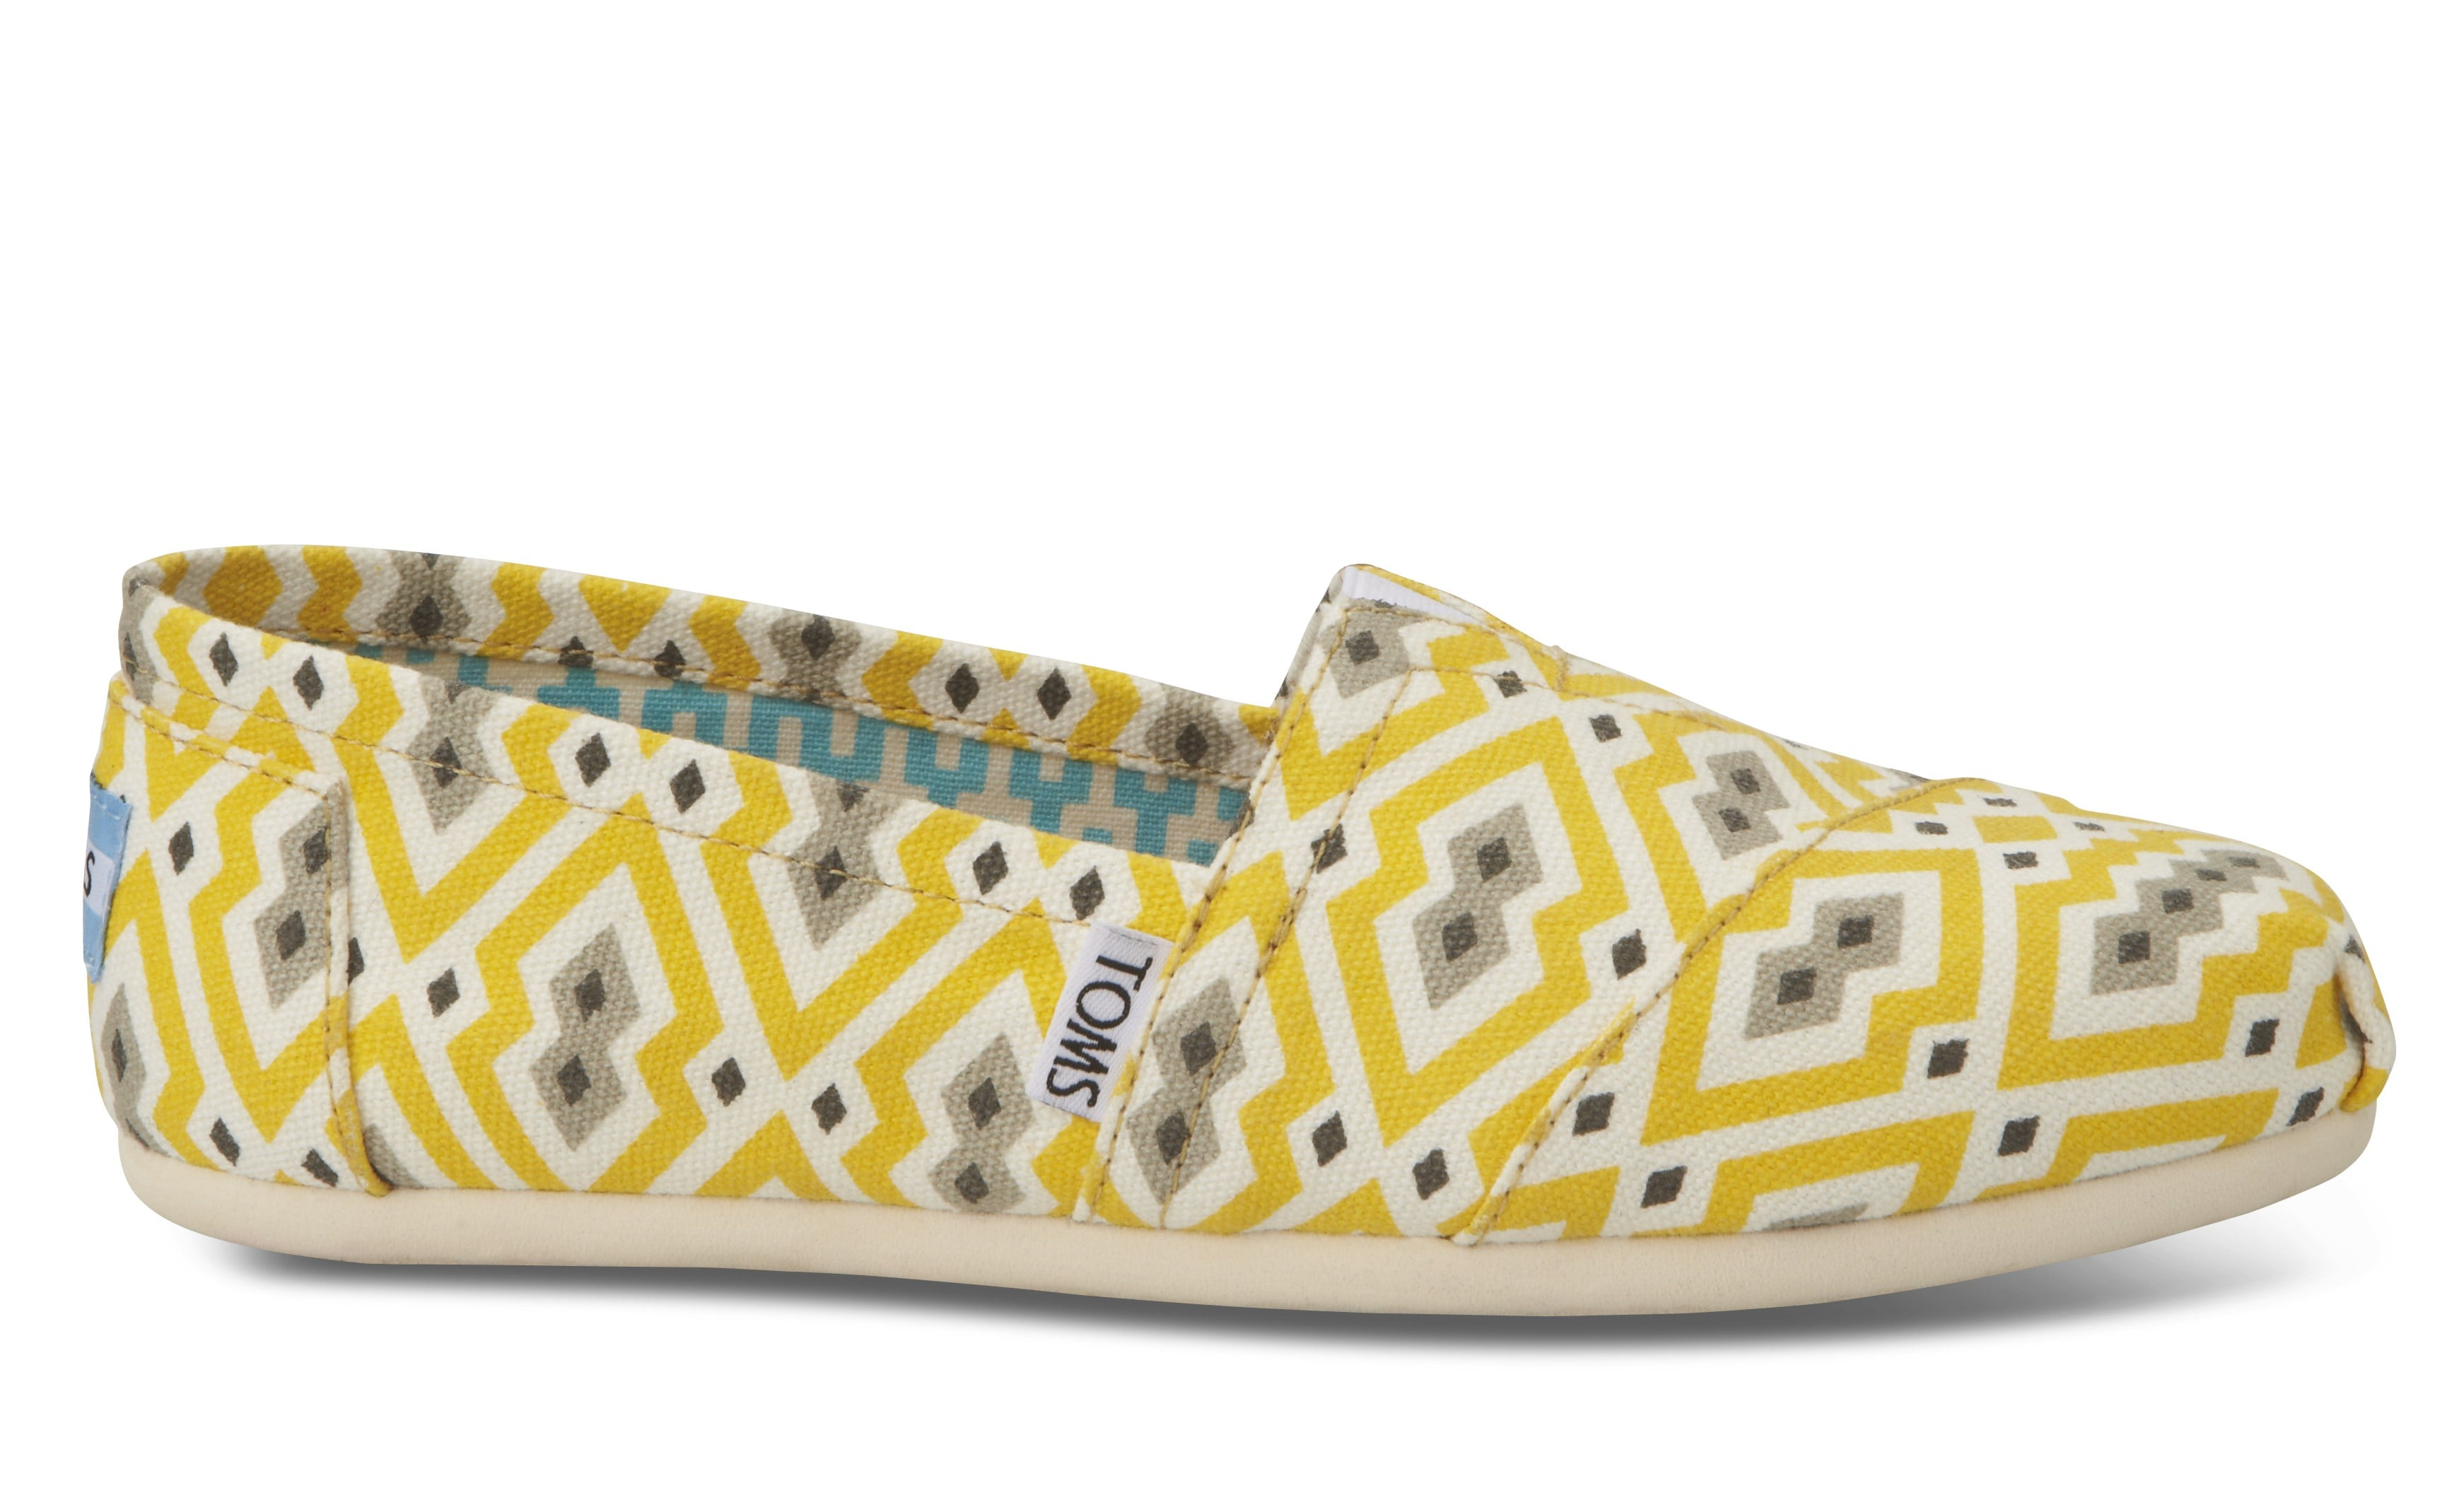 TOMS and Jonathan Adler Bright Yellow Classics - Profile